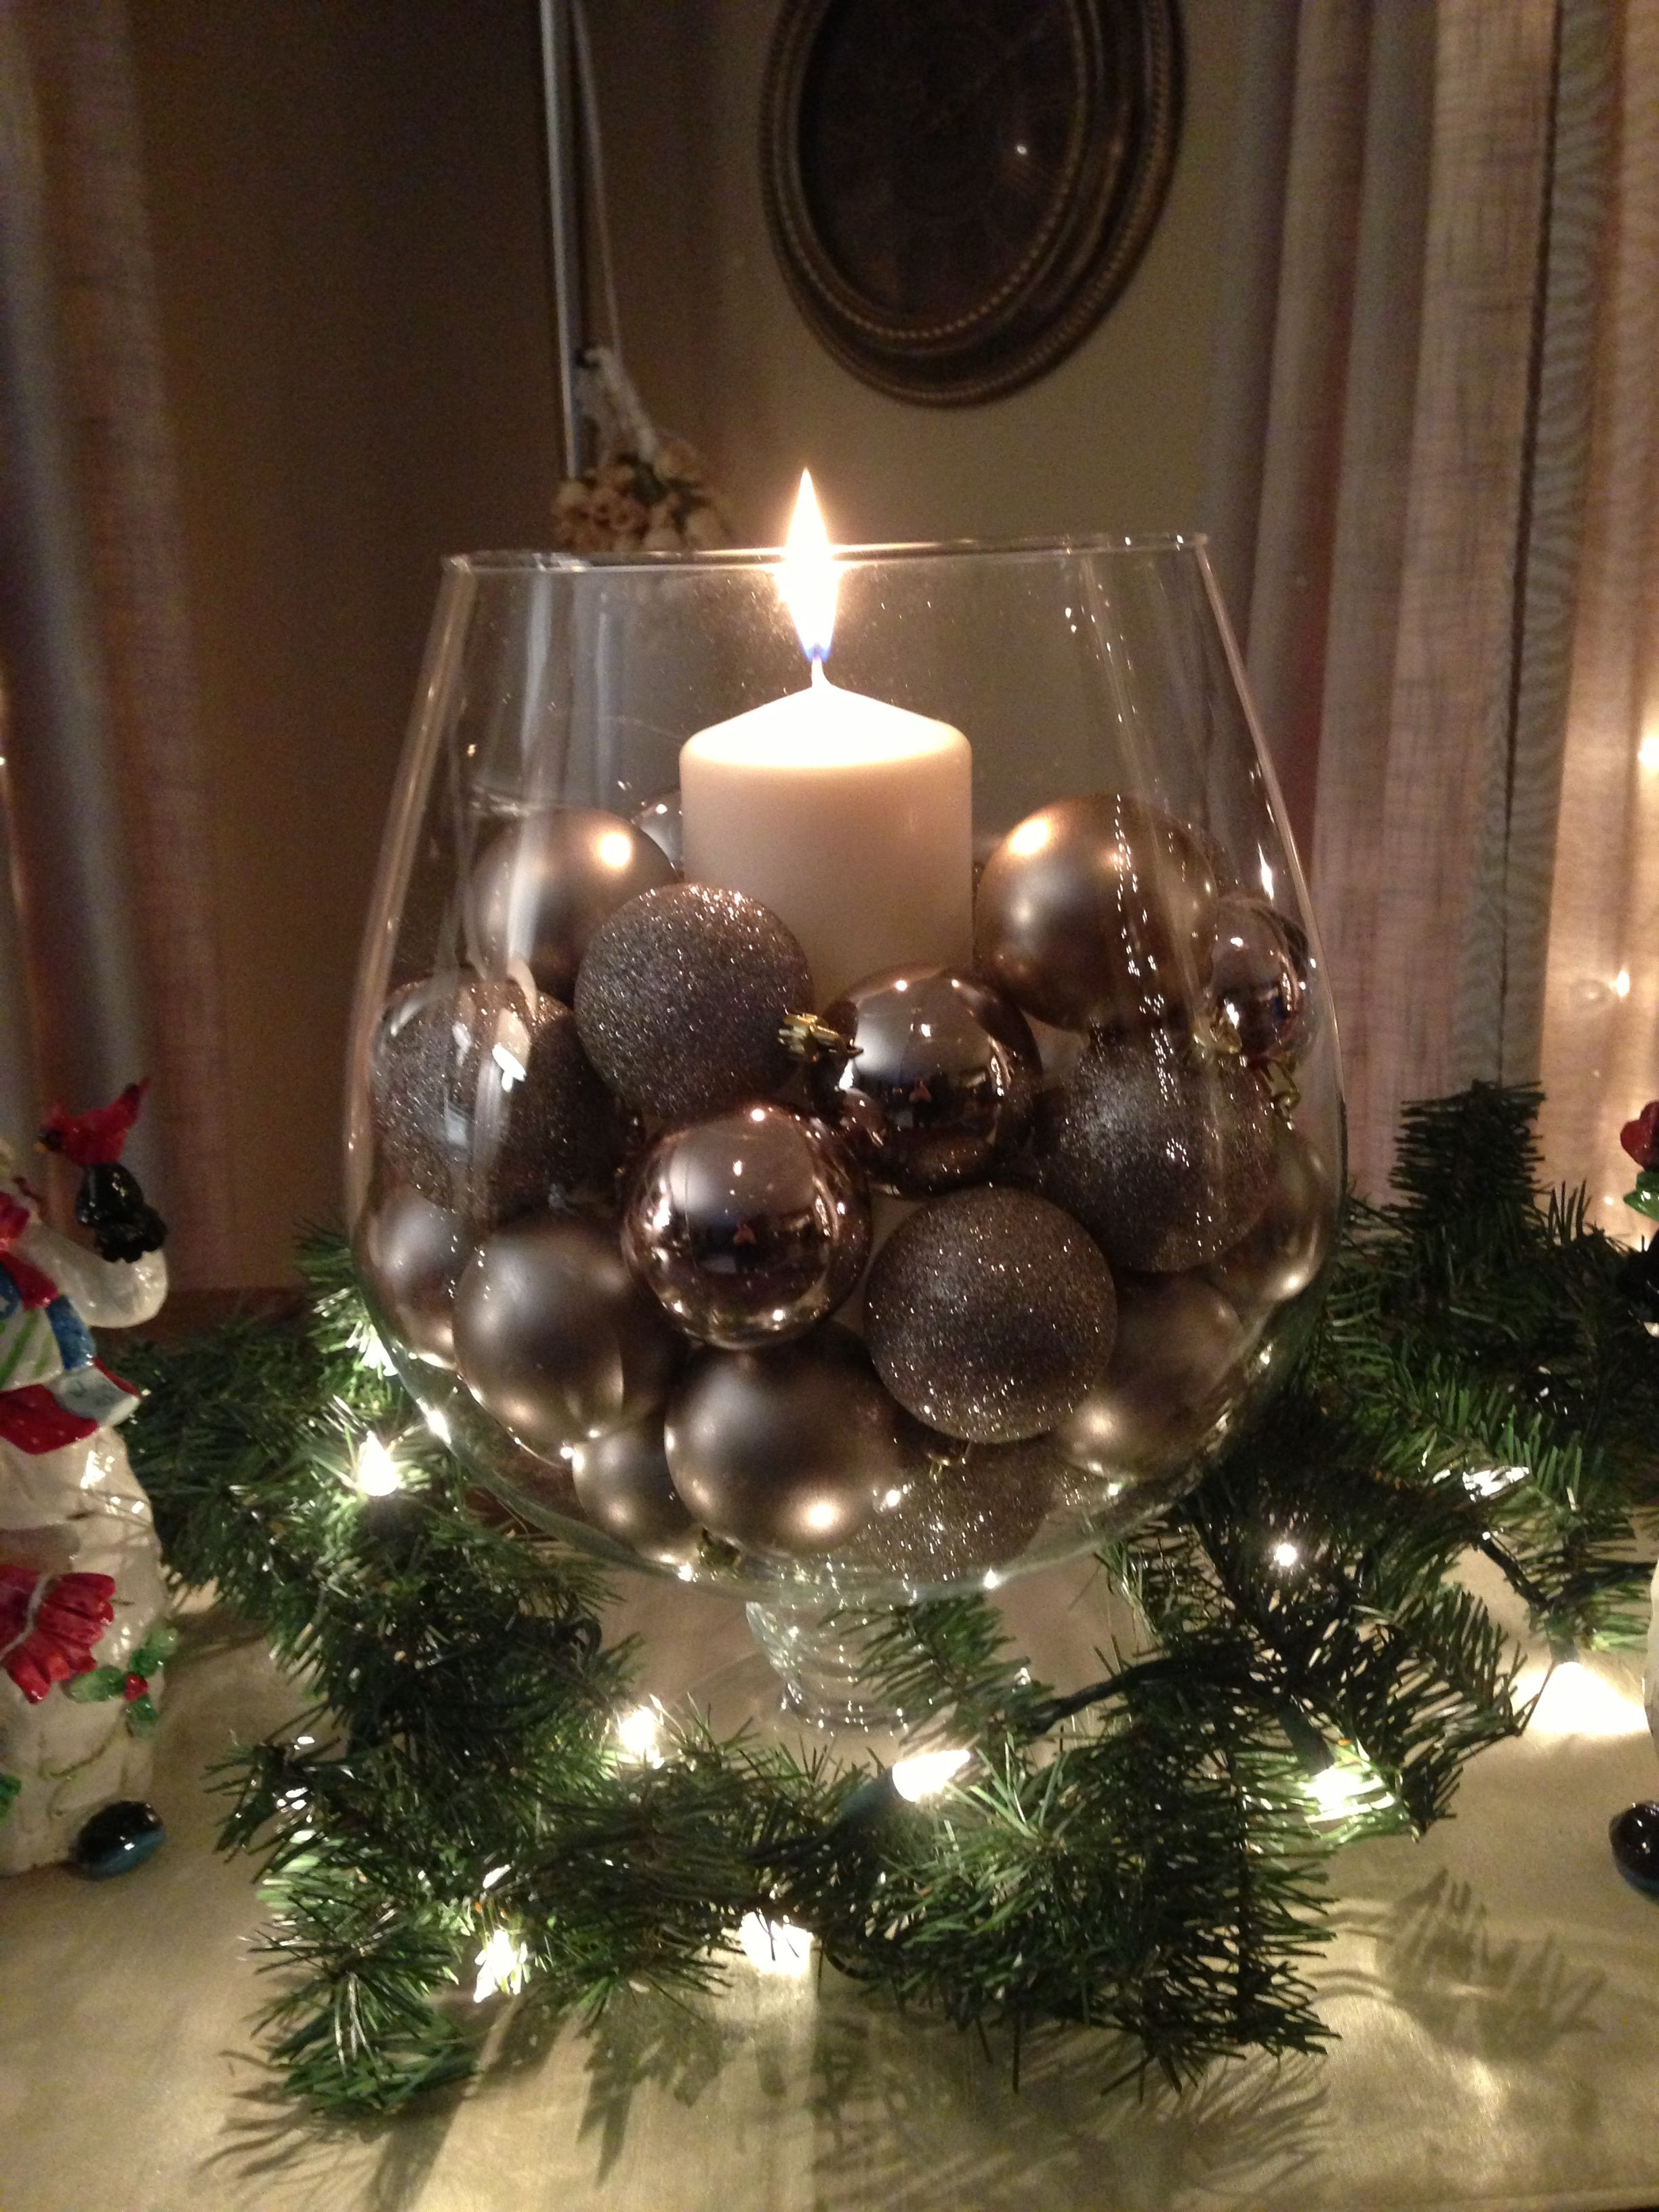 Christmas Table Centerpiece  Baubles In A Vase With Candle